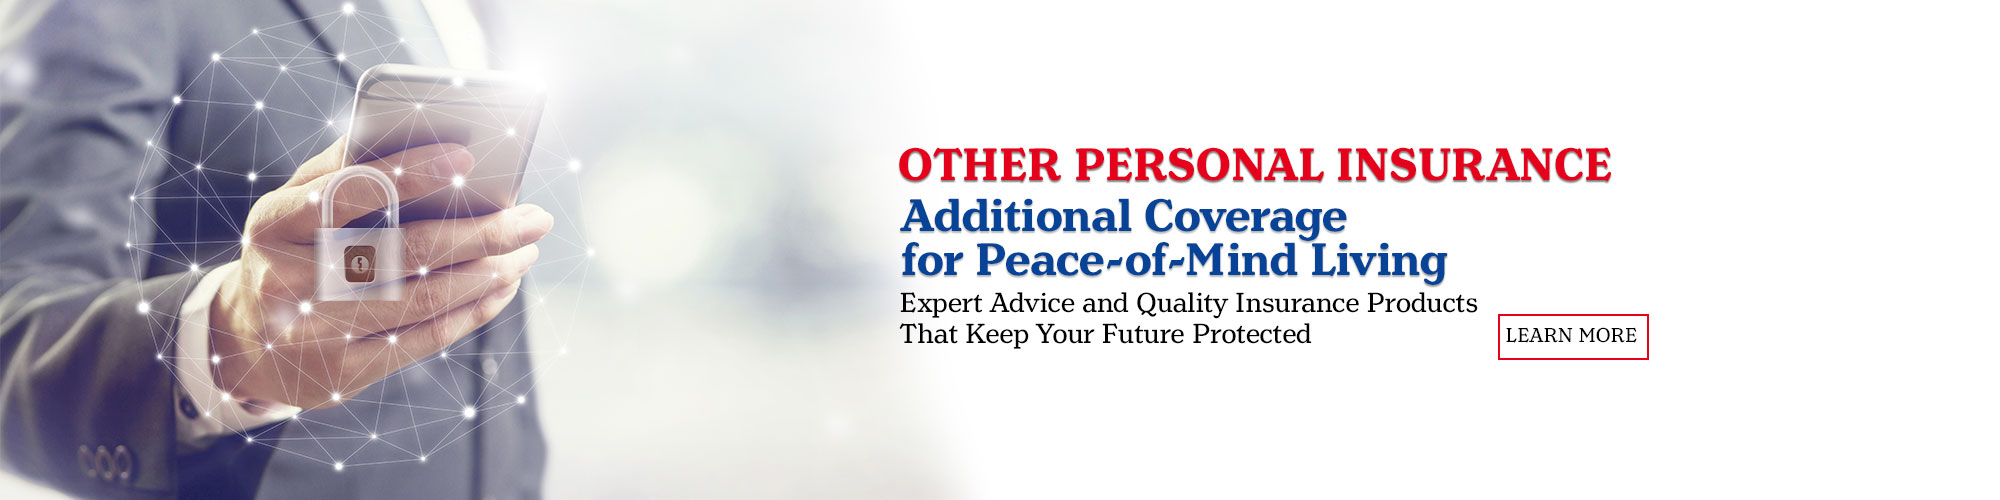 Other Personal Insurance. Additional Coverage for Peace-of-mind- Living. Expert advice and quality insurance products that keep your future protected. Learn More.